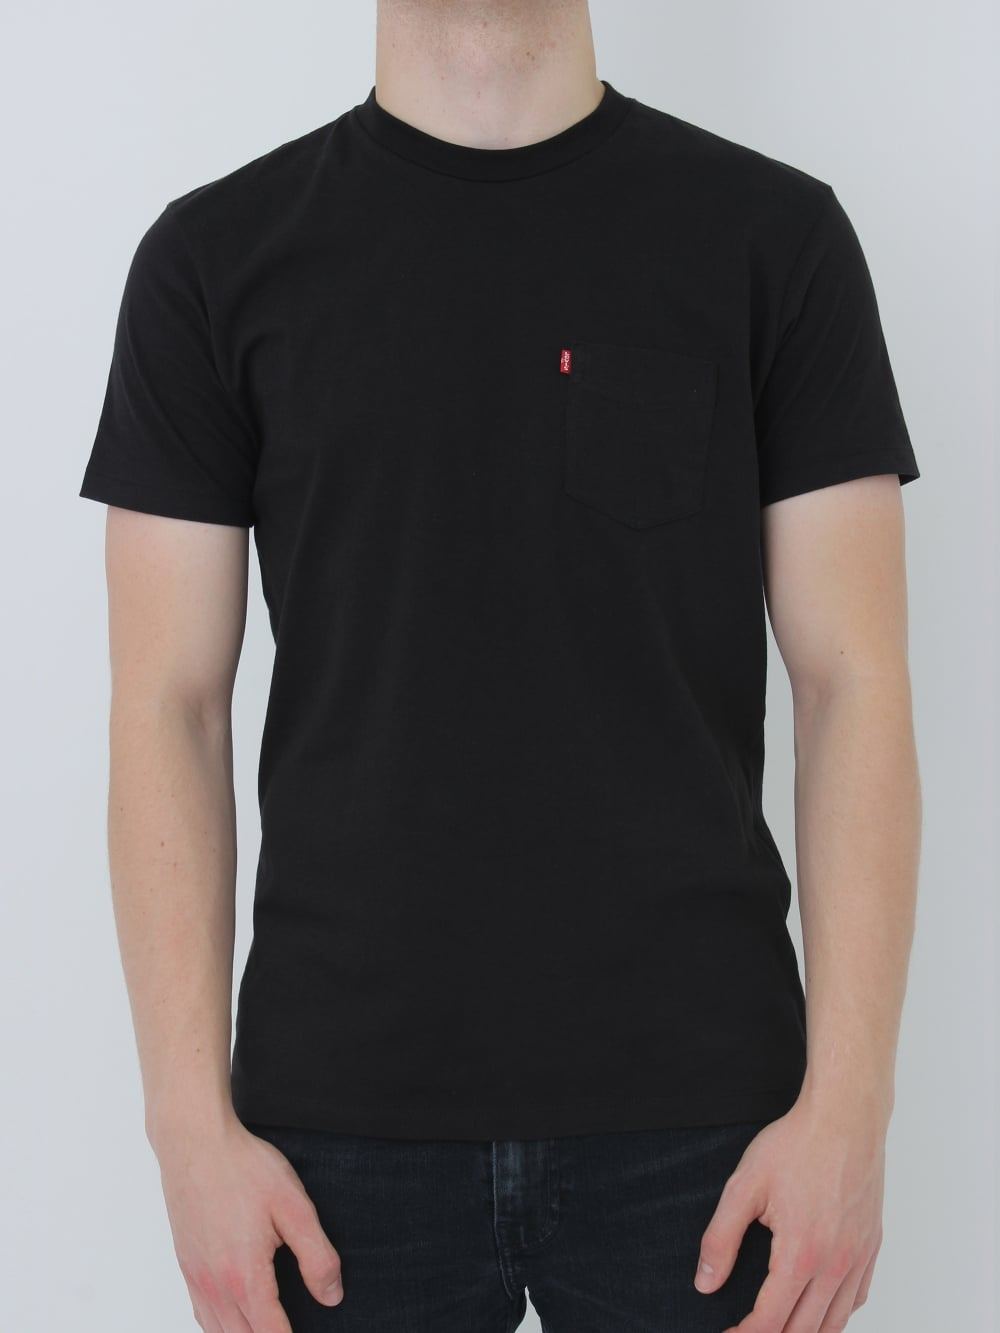 539dca5a Levis Sunset Pocket T-Shirt in Black - northern threads